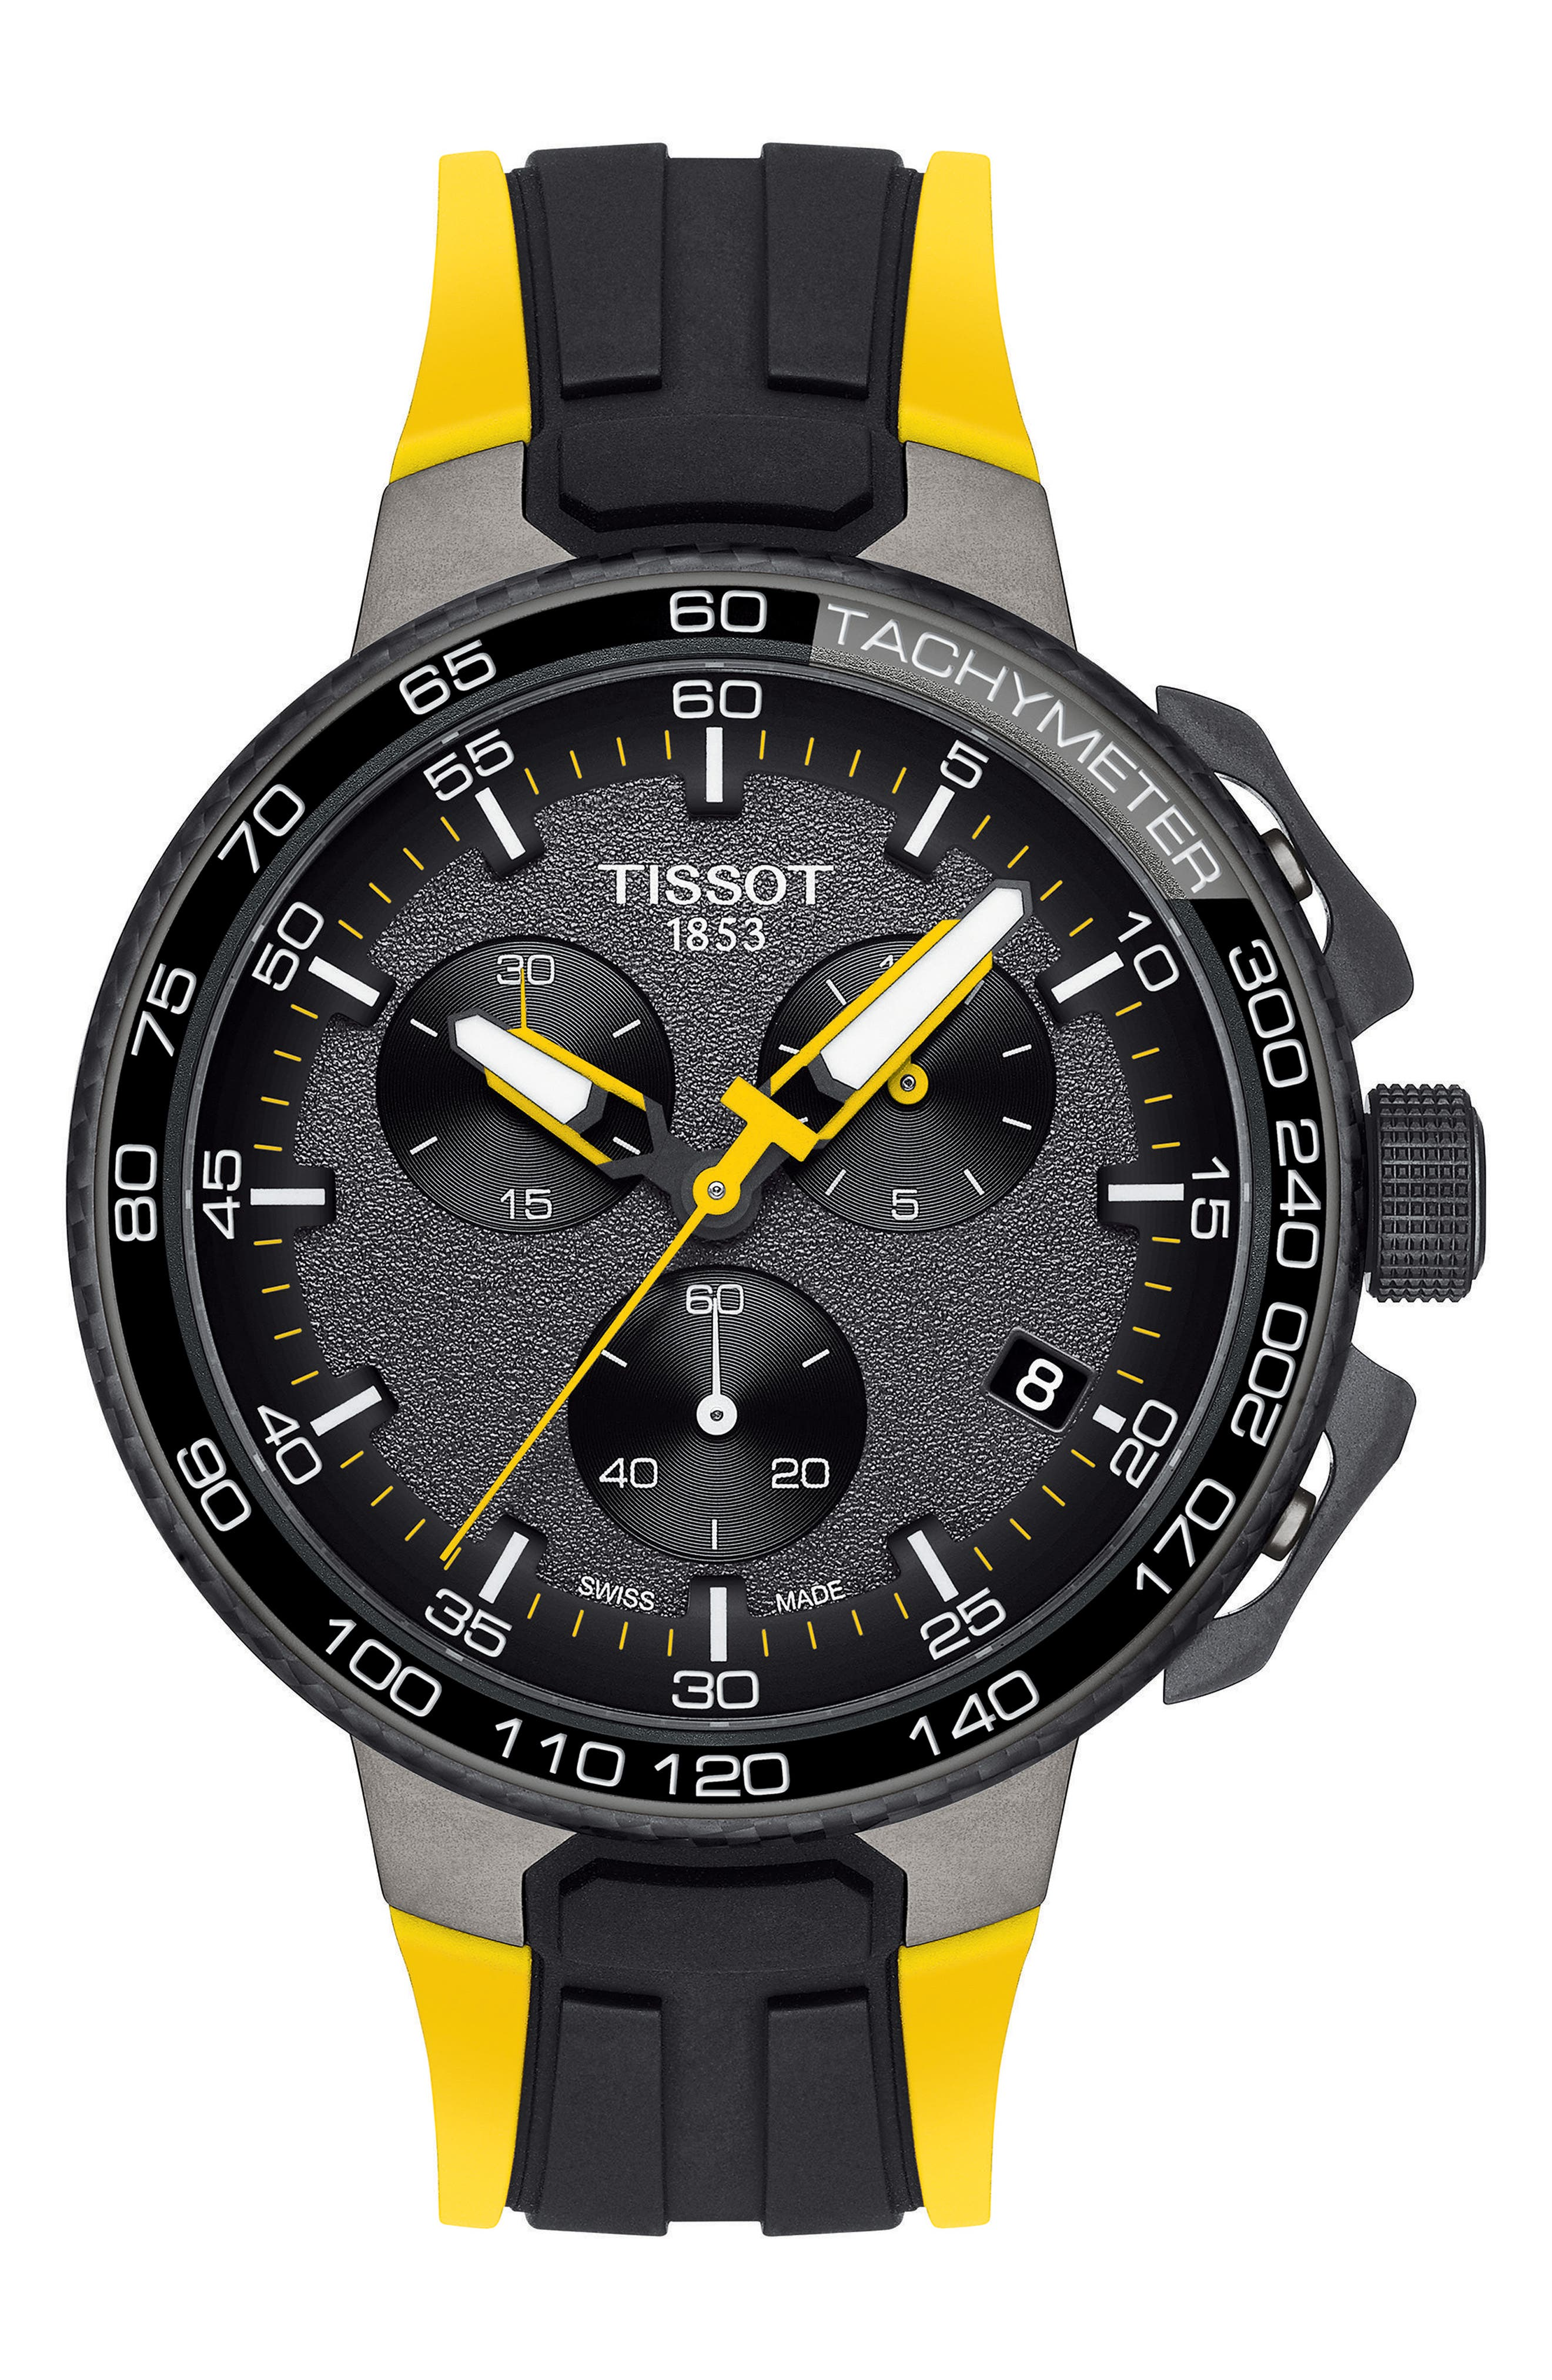 Tissot T-Race Tour de France Chronograph Silicone Strap Watch, 45mm